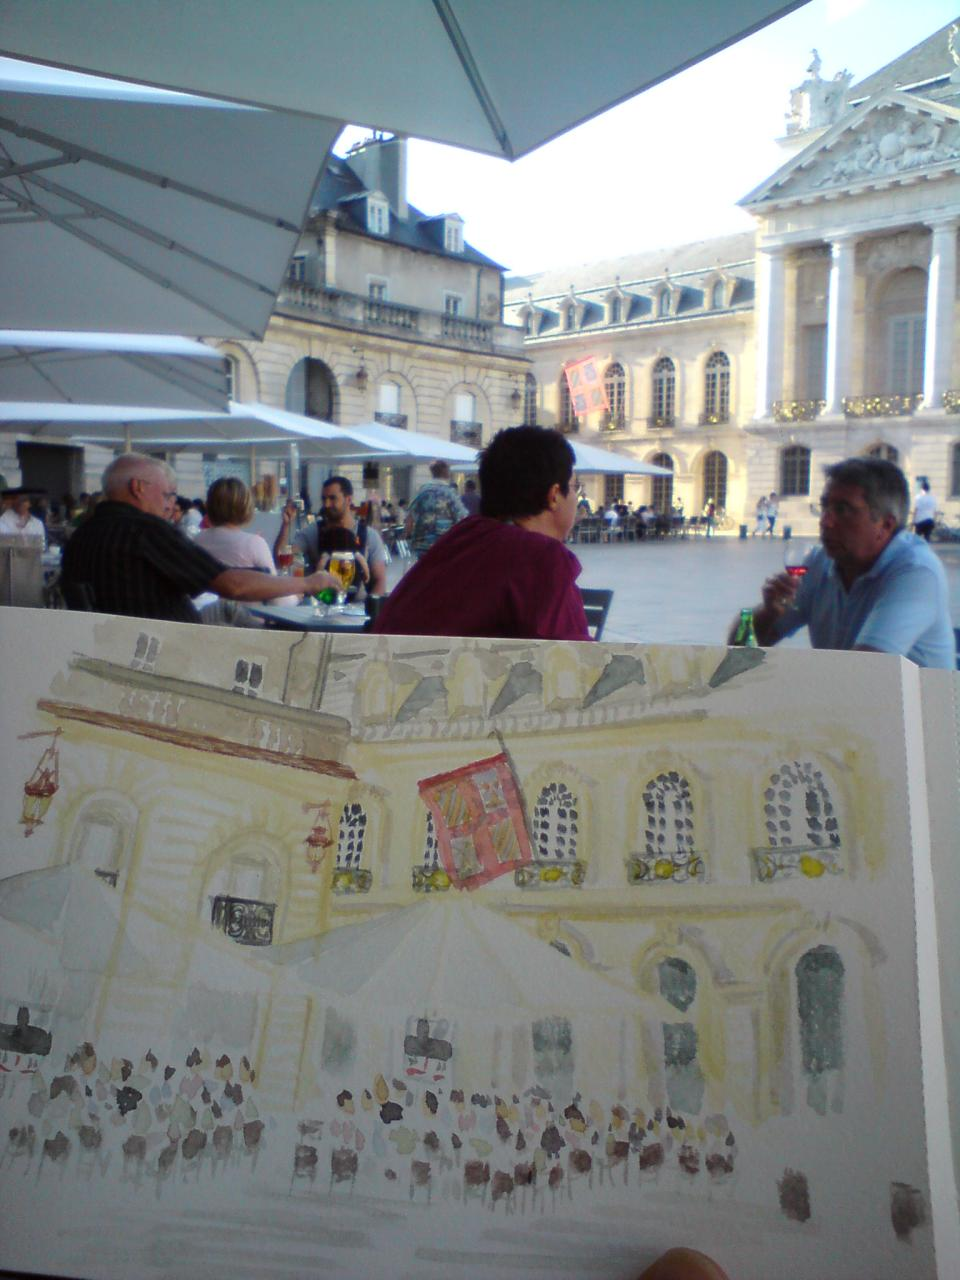 Sketching on Place de la Liberation